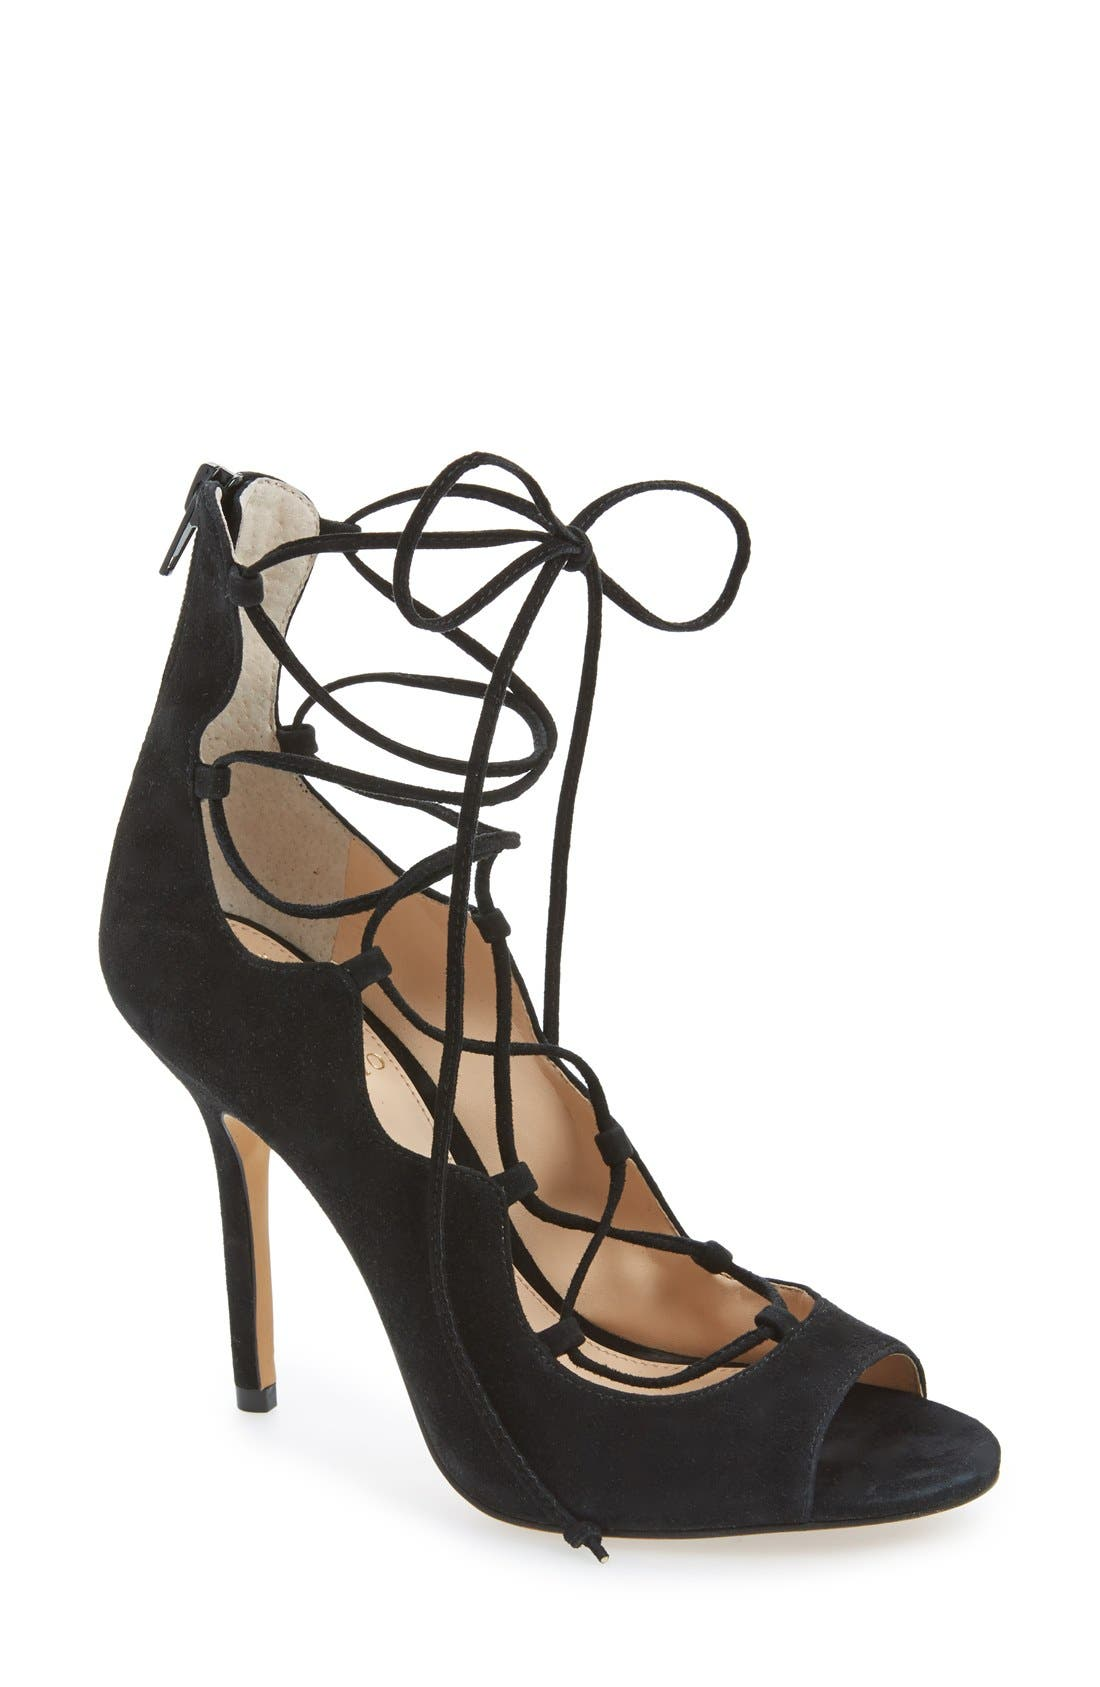 Alternate Image 1 Selected - Vince Camuto 'Sandria' Peep Toe Ghillie Sandal (Women) (Nordstrom Exclusive)